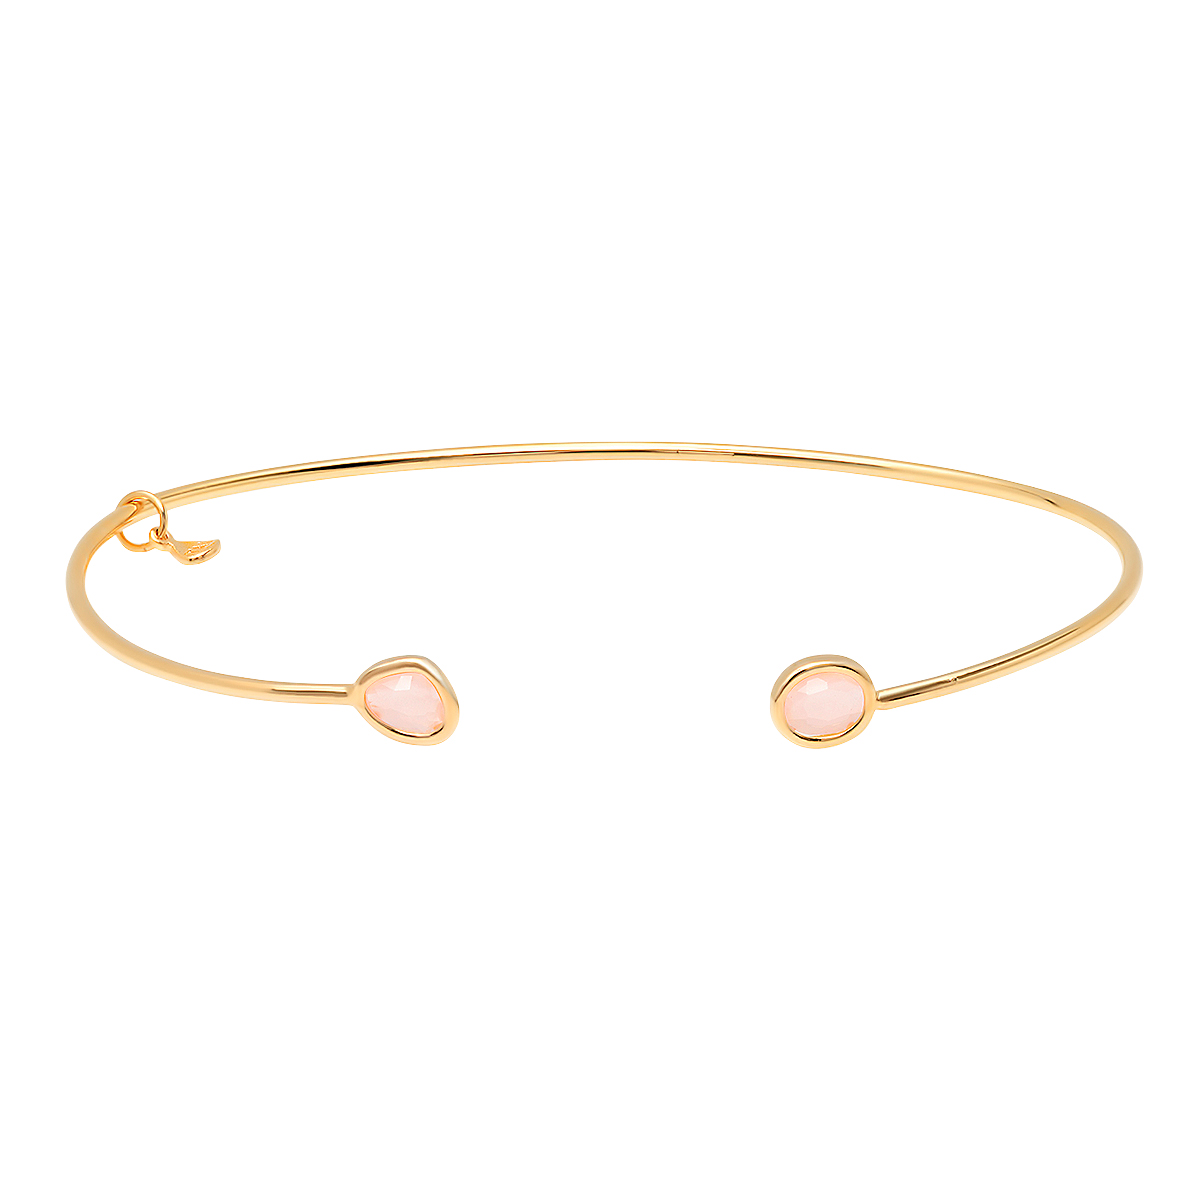 bangle. BCA. contact Jackie_fields@peoplemag.com for usage.